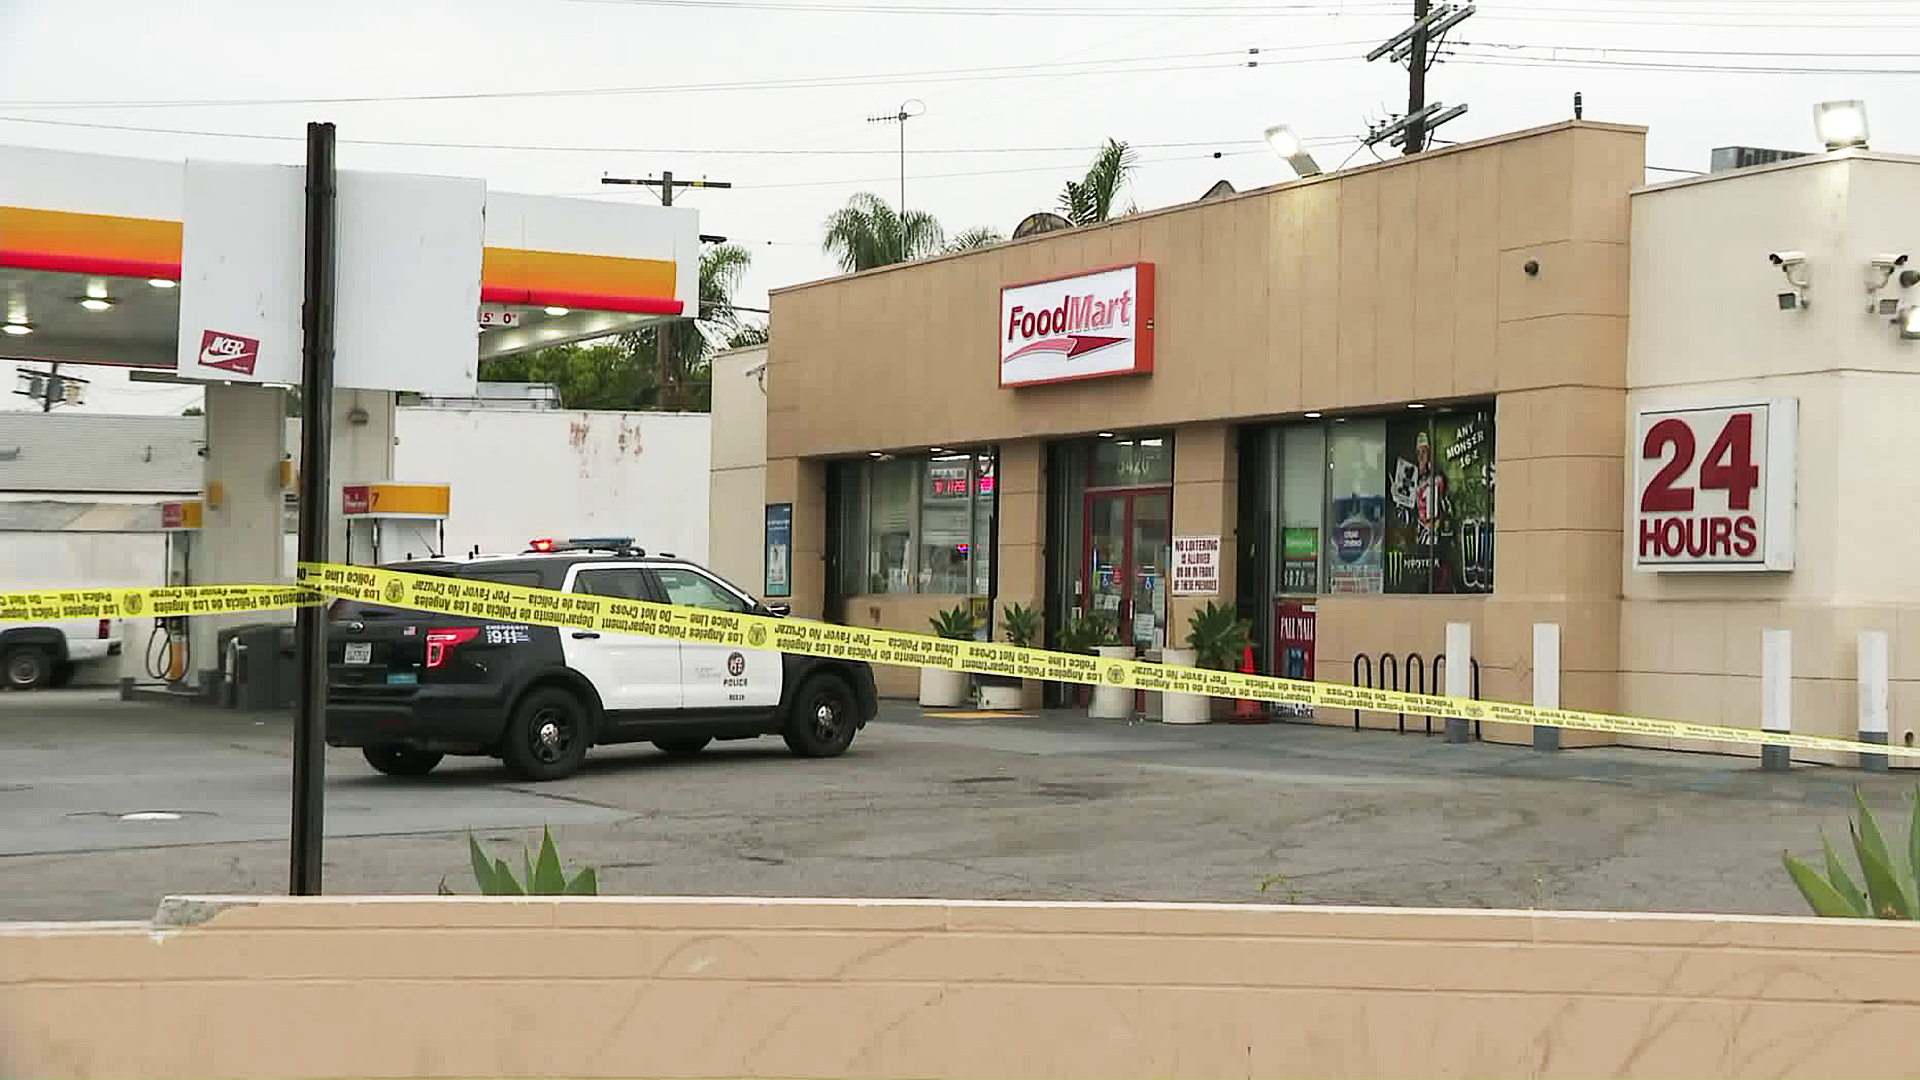 Police investigate a fatal shooting in Mid-City on July 3, 2018. (Credit: KTLA)